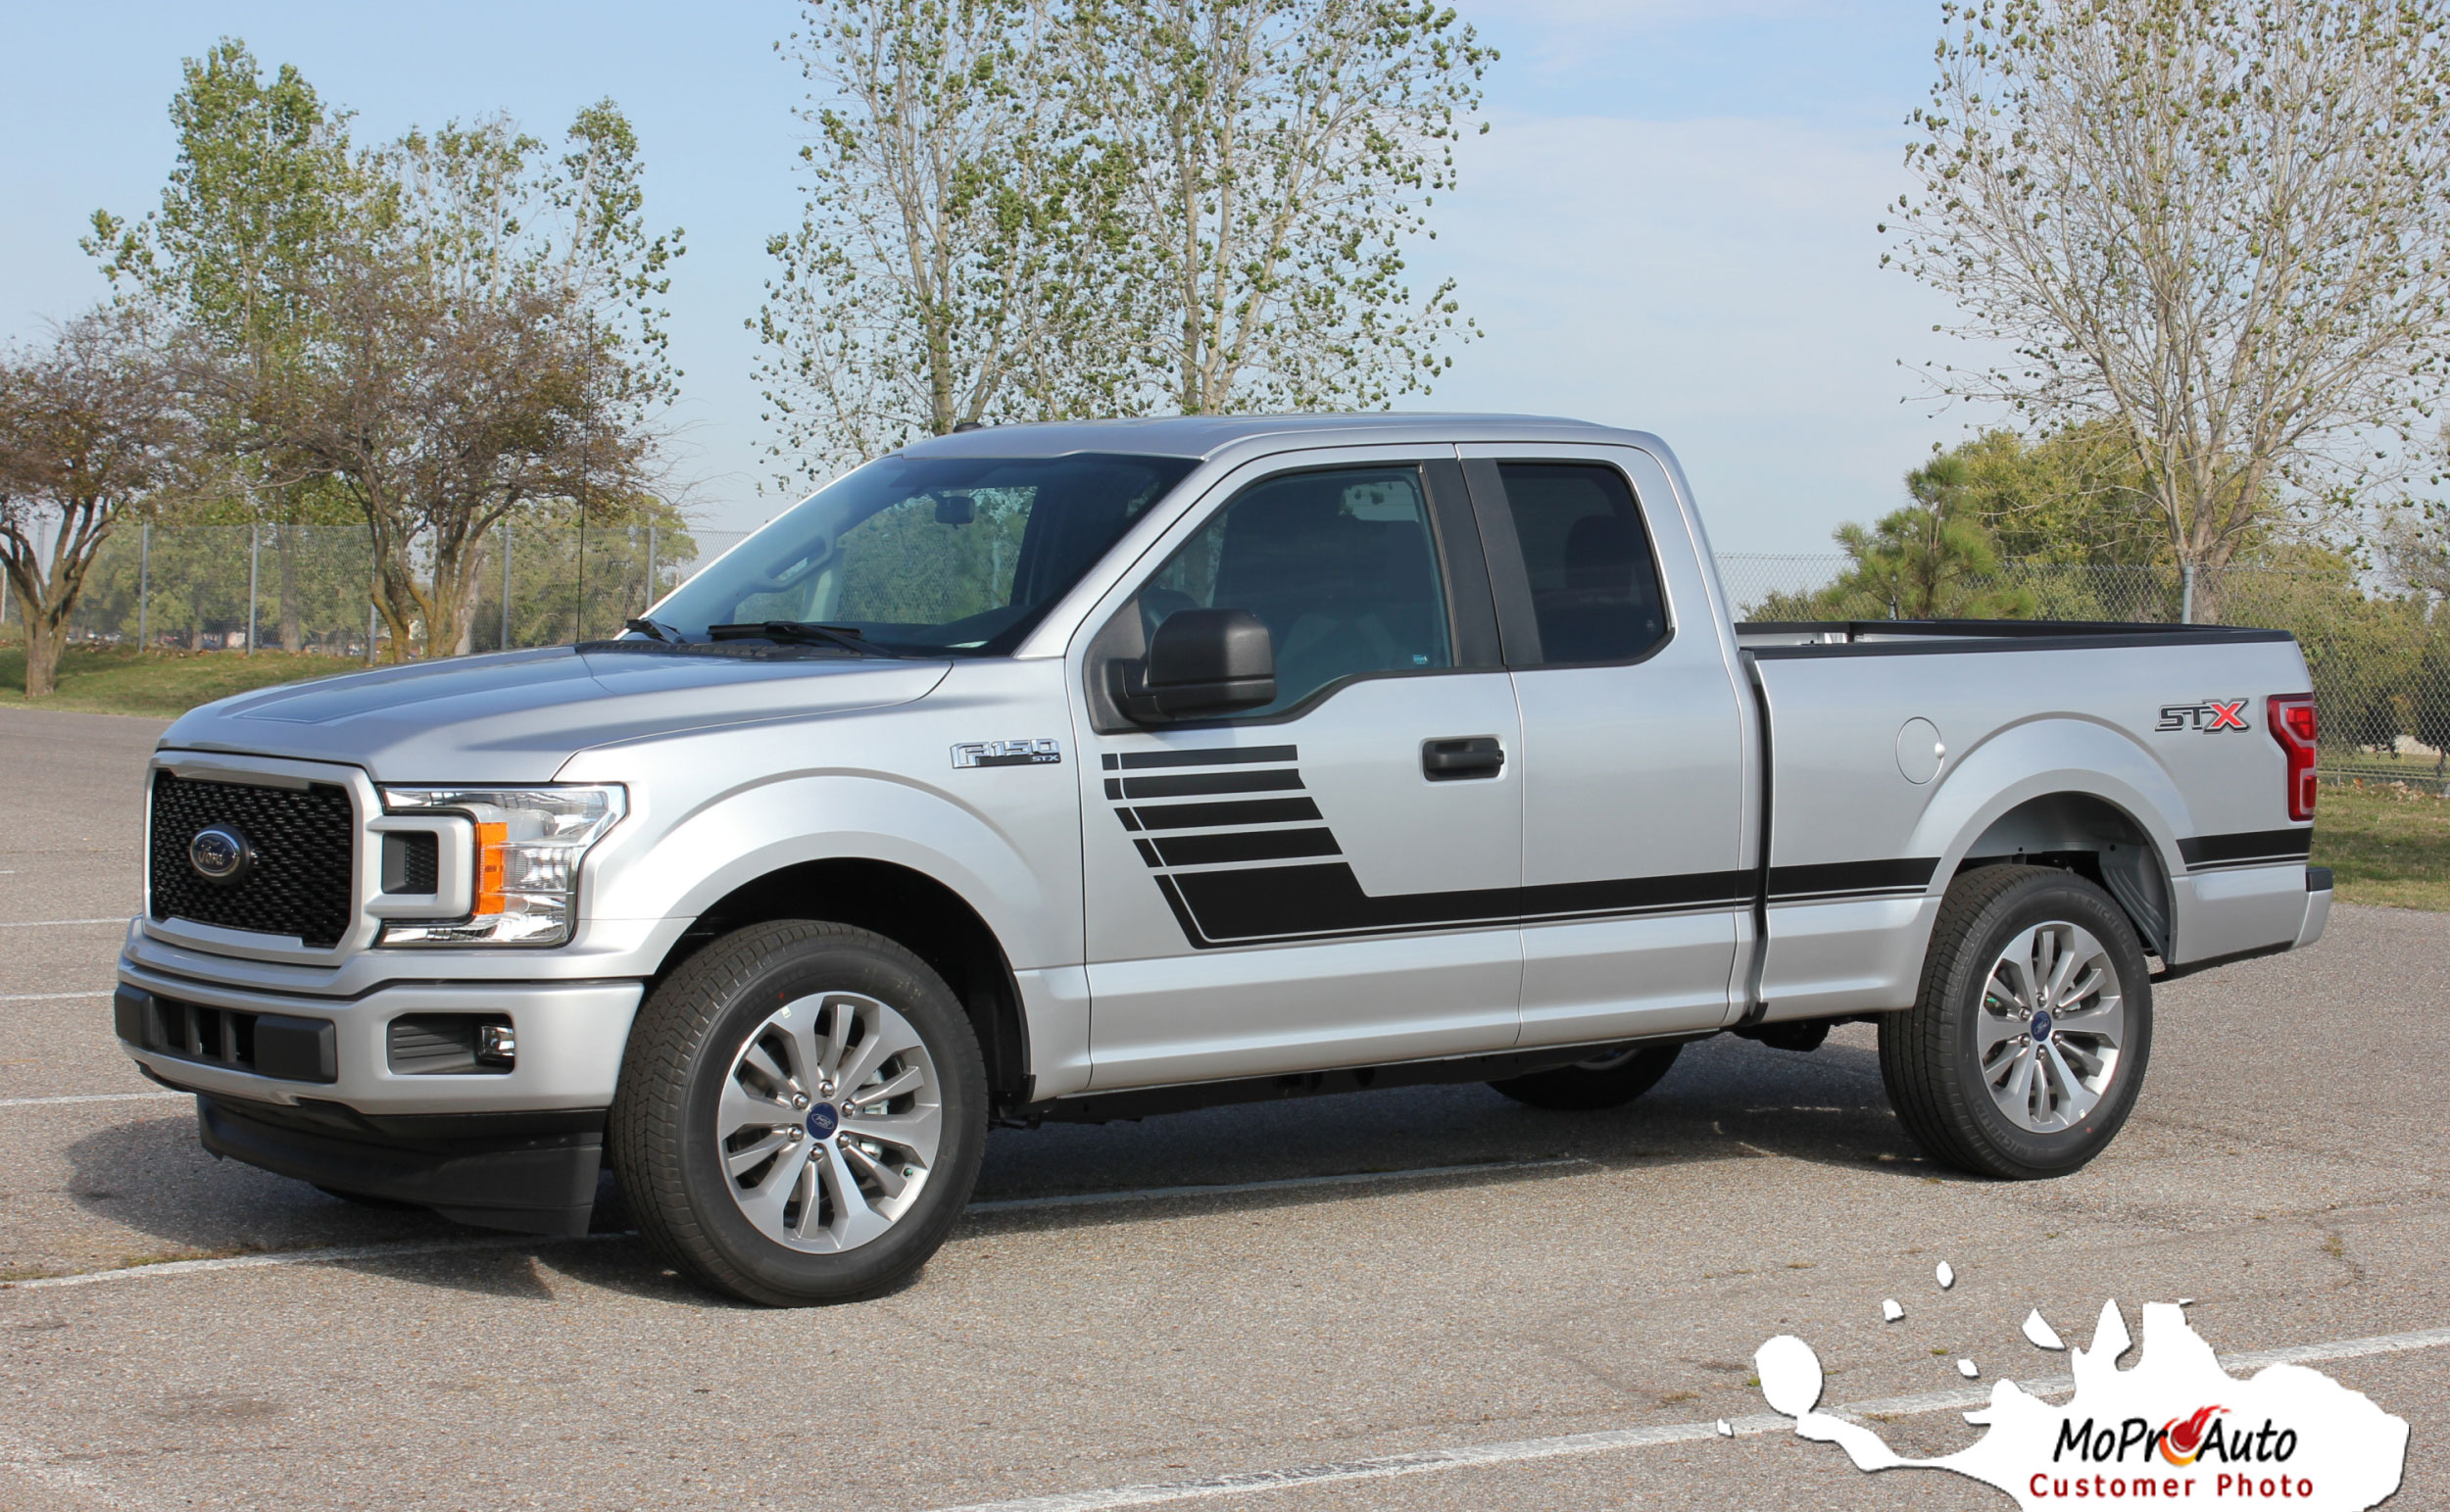 2015 2016 2017 2018 SPEEDWAY Special Edition Ford F-Series F-150 Door Hockey Stick Appearance Package Vinyl Graphics and Decals Kit by MoProAuto Pro Design Series